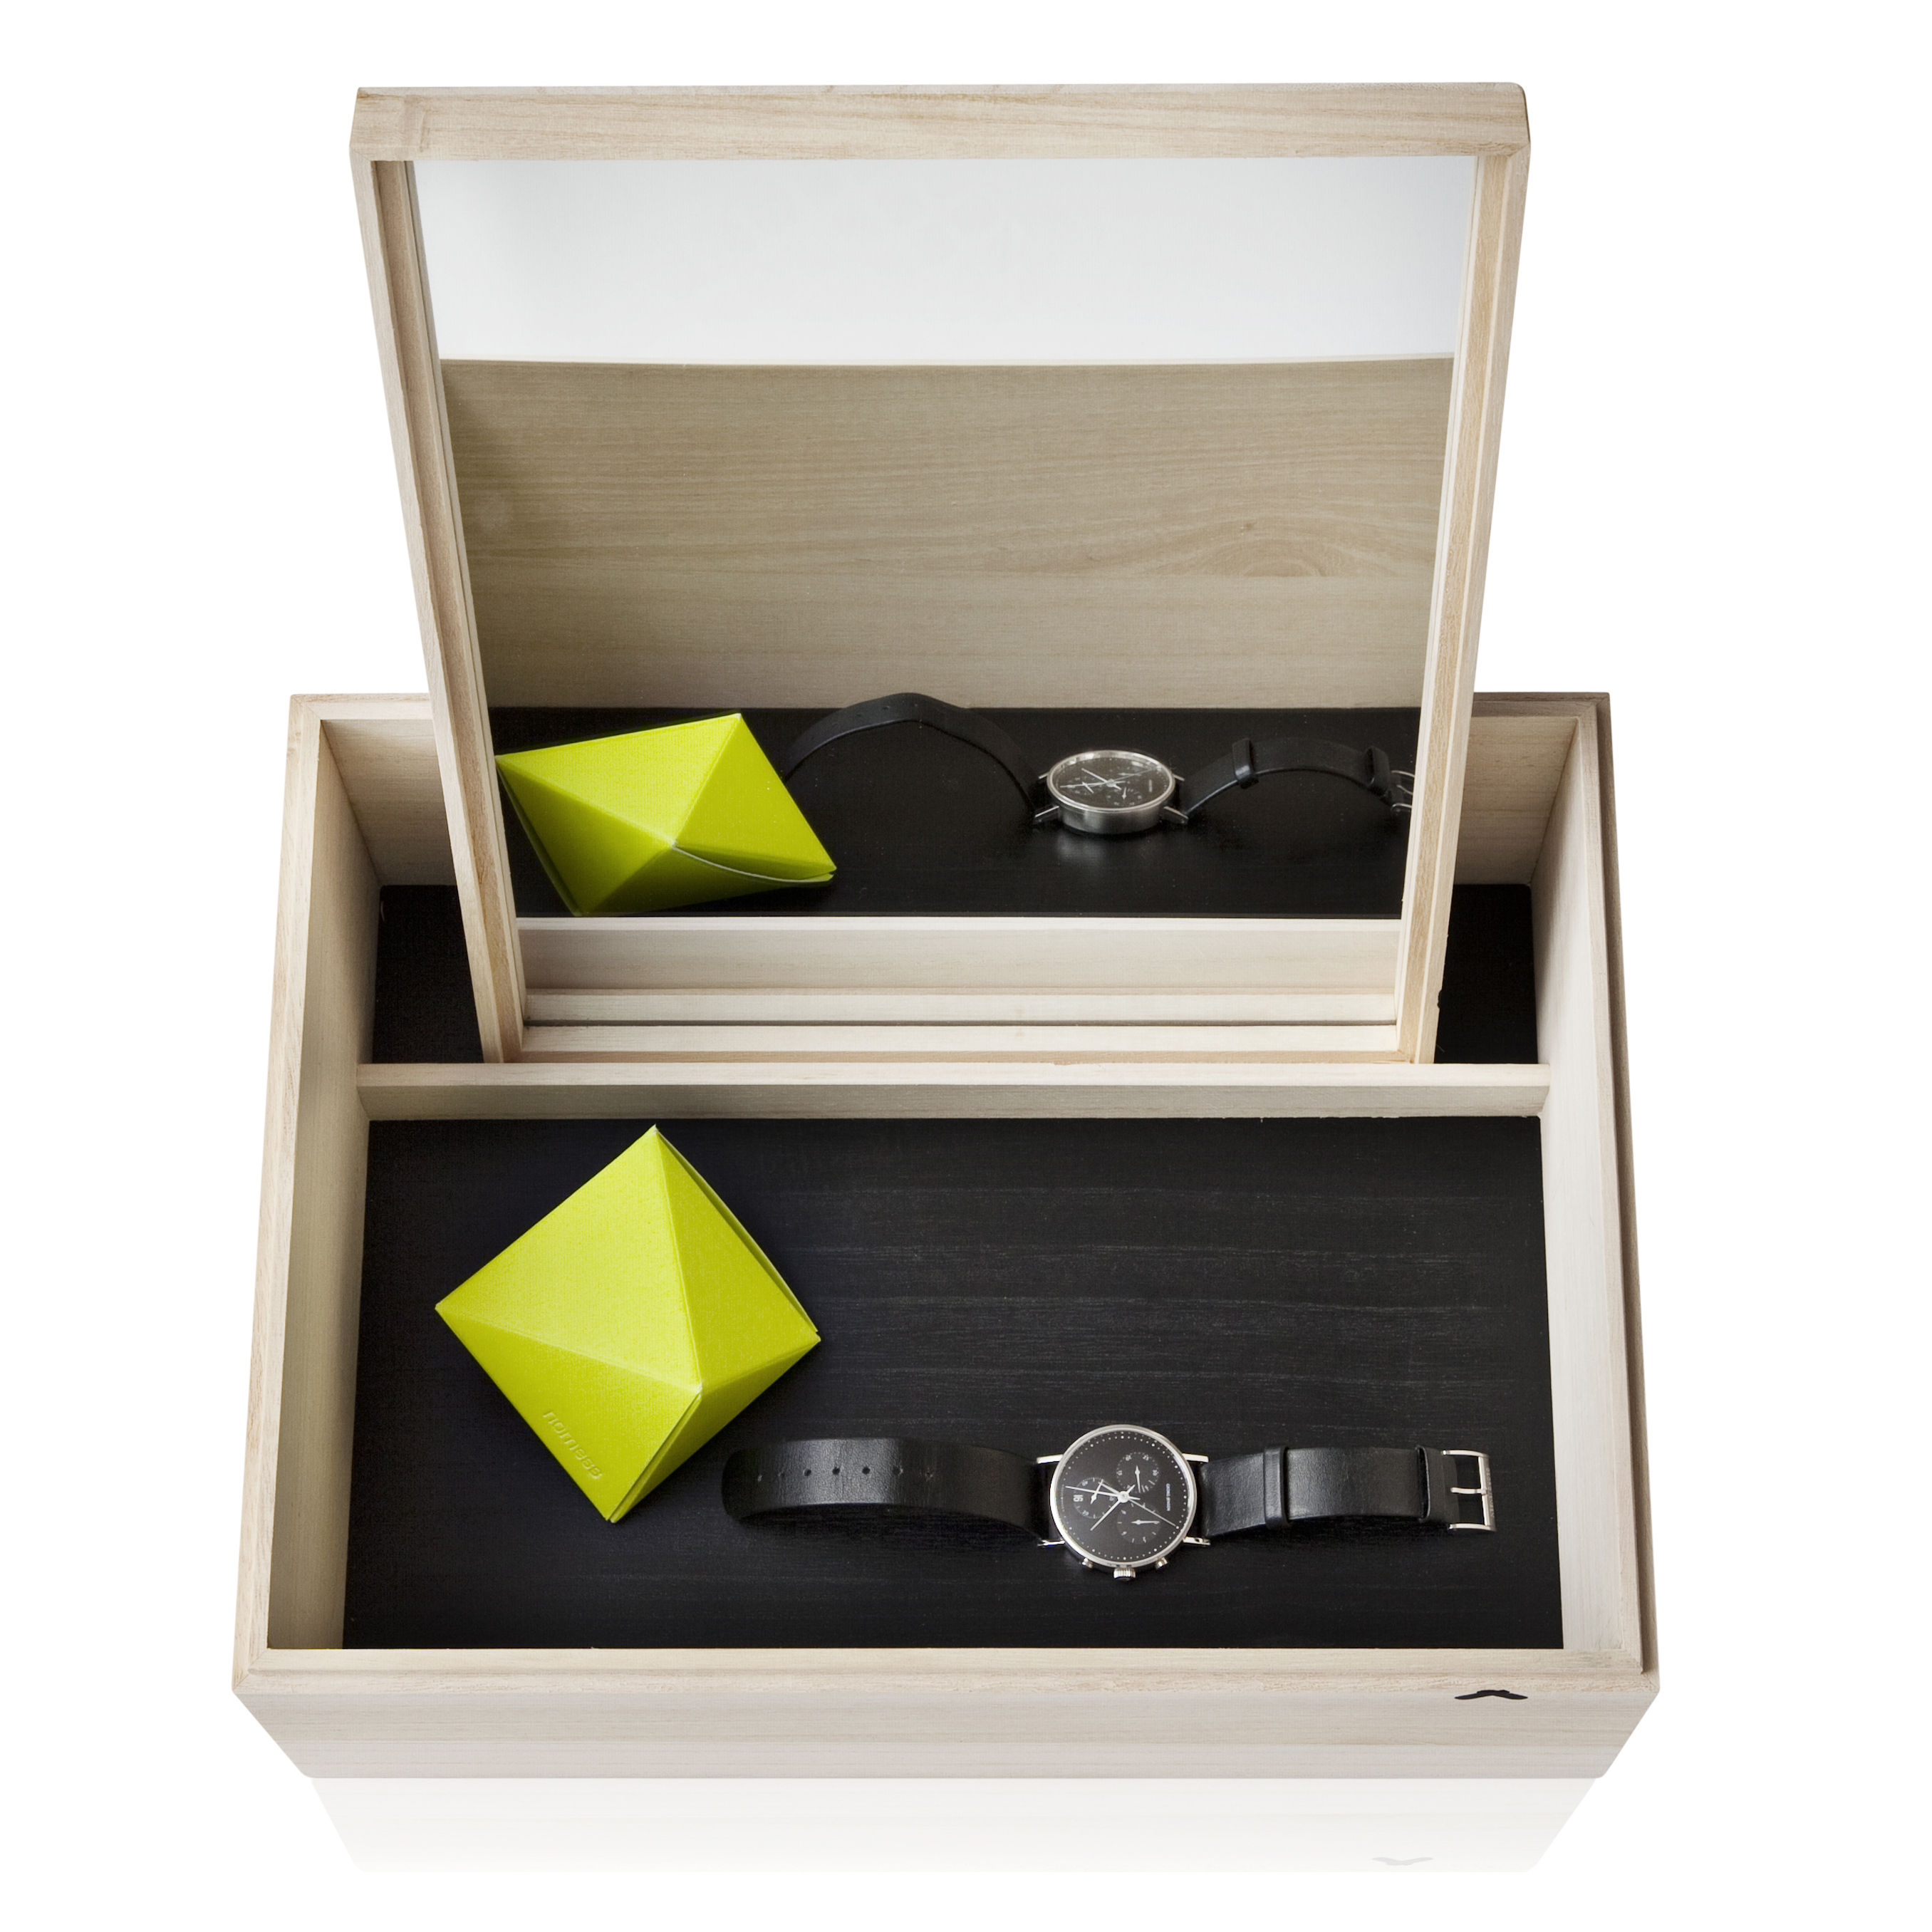 Accessories - Bathroom Accessories - Balsabox Personal MINI Jewellery box by Nomess - Natural wood / Black inside - Plywood